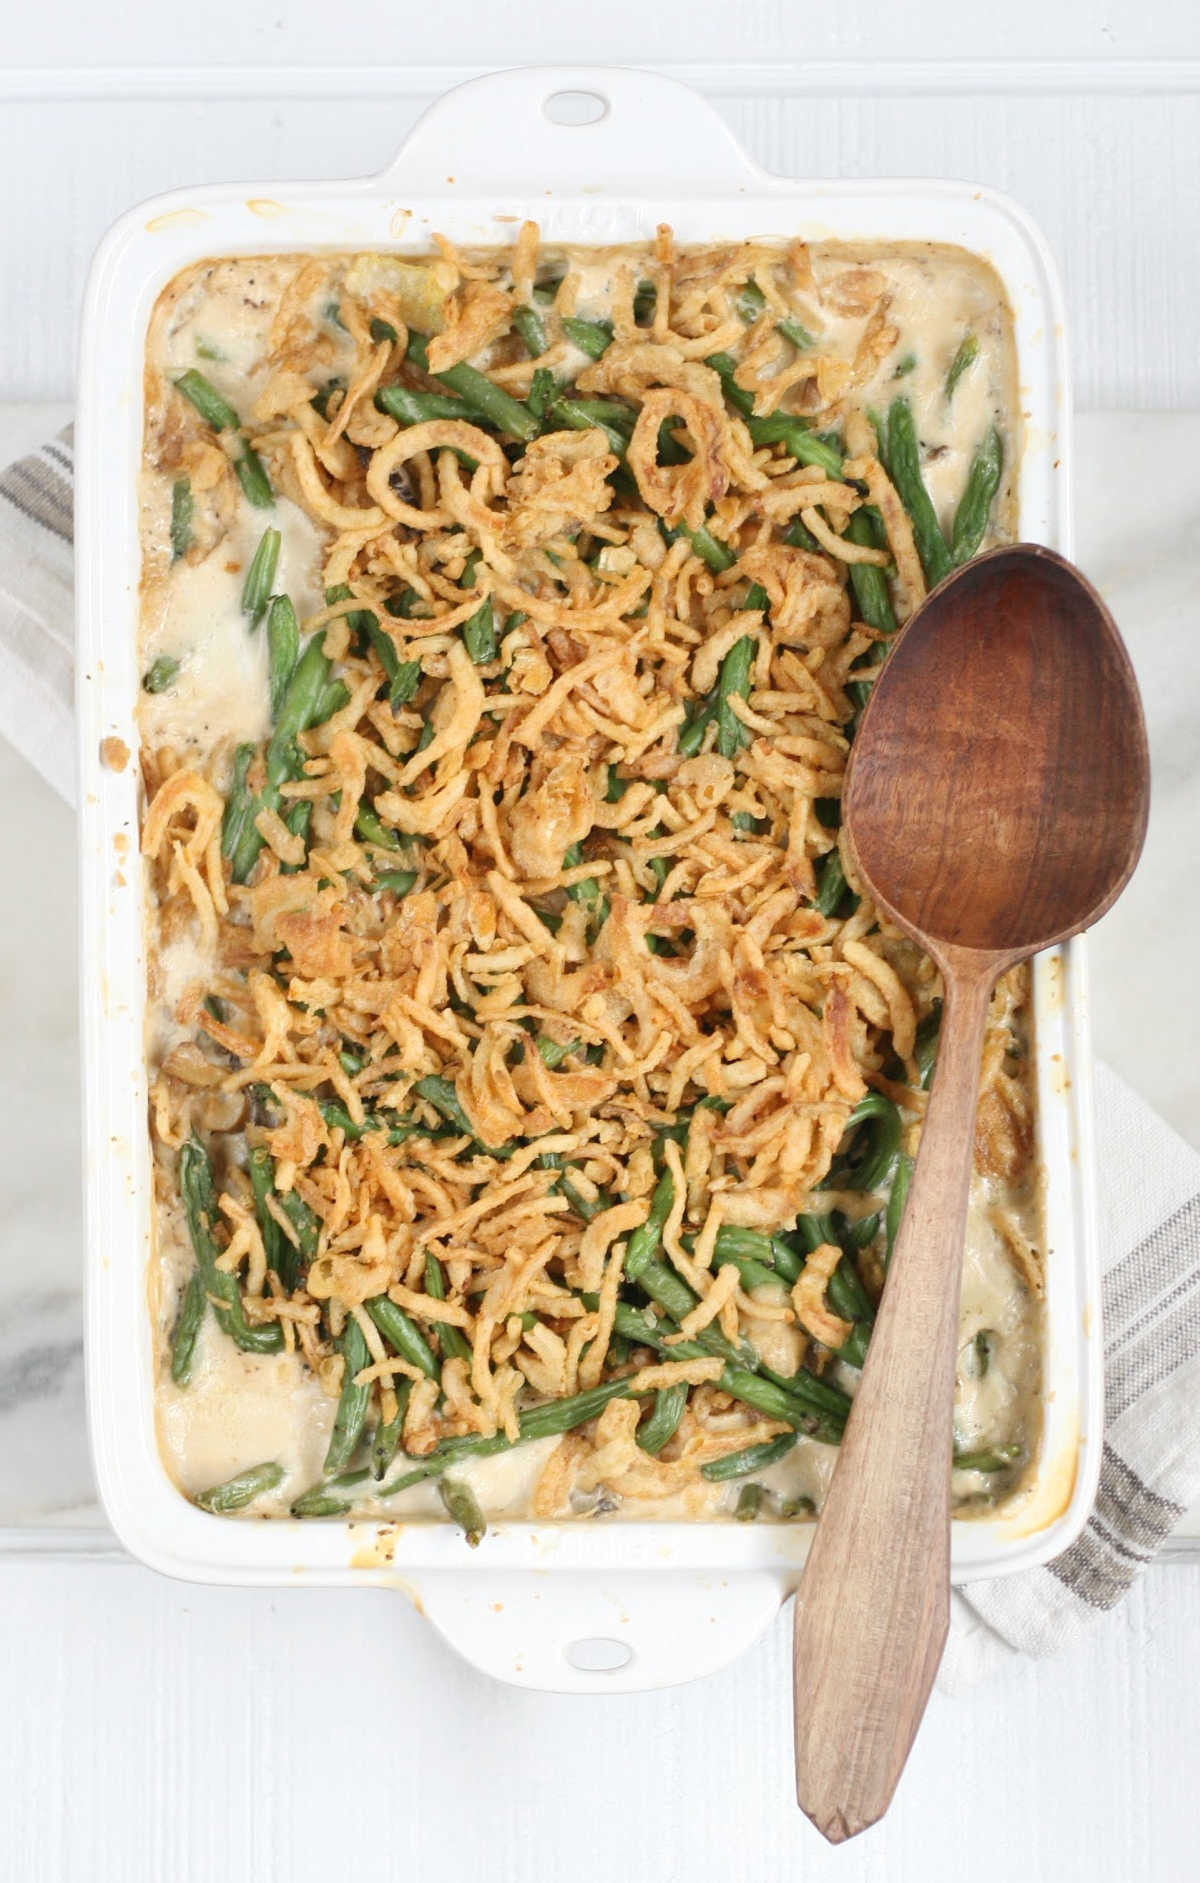 Rectangle white baking dish with green bean casserole, wooden spoon on edge of dish.